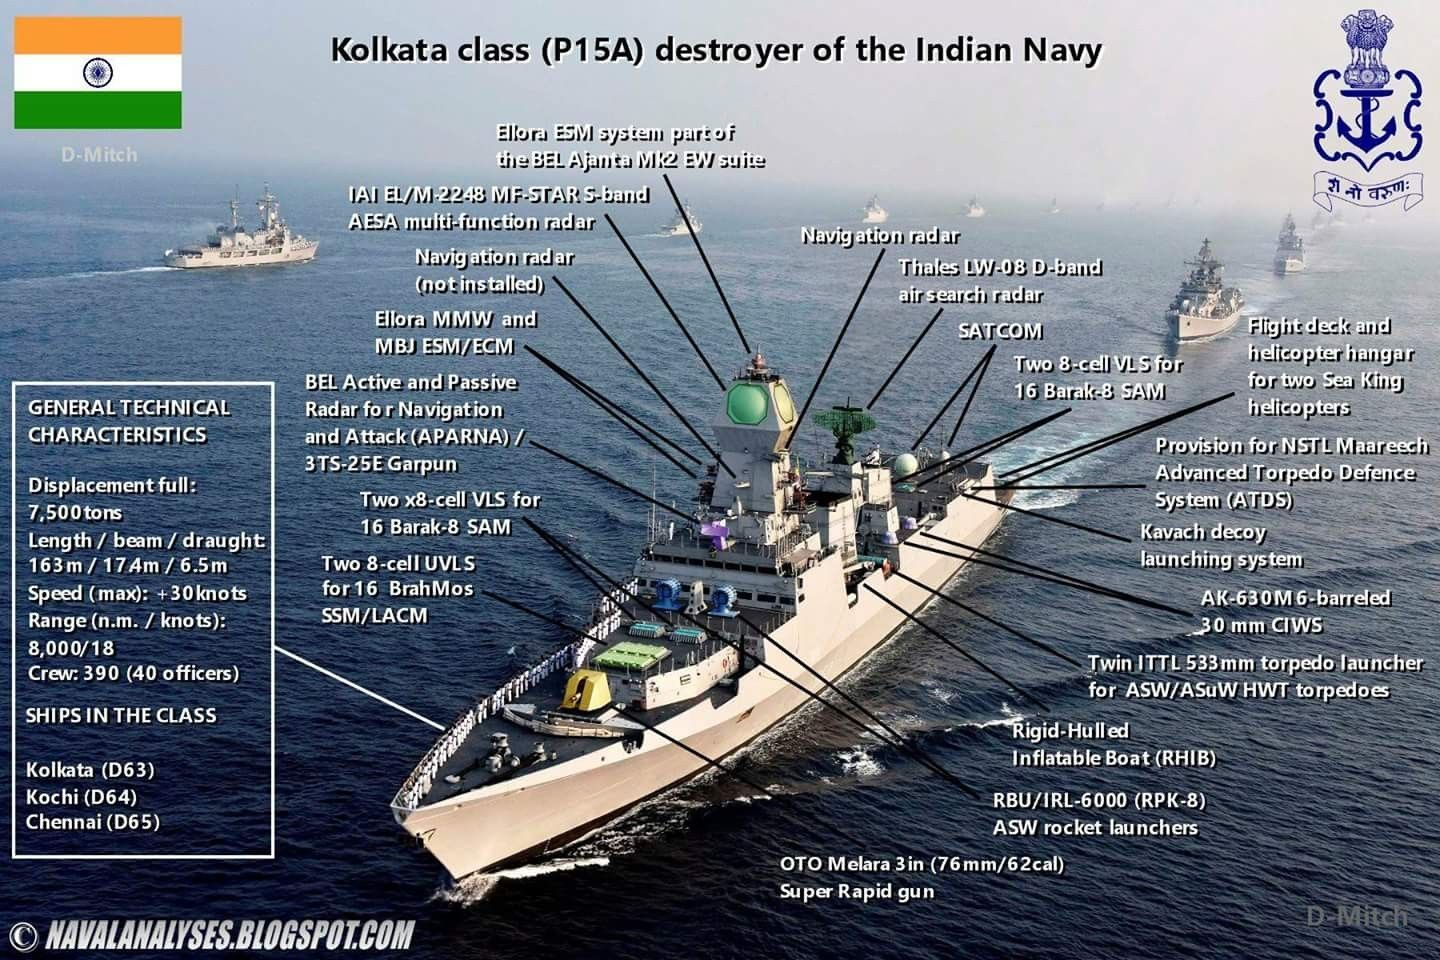 Pin By Radialv On Warships In Details Indian Navy Ships Indian Navy Navy Ships